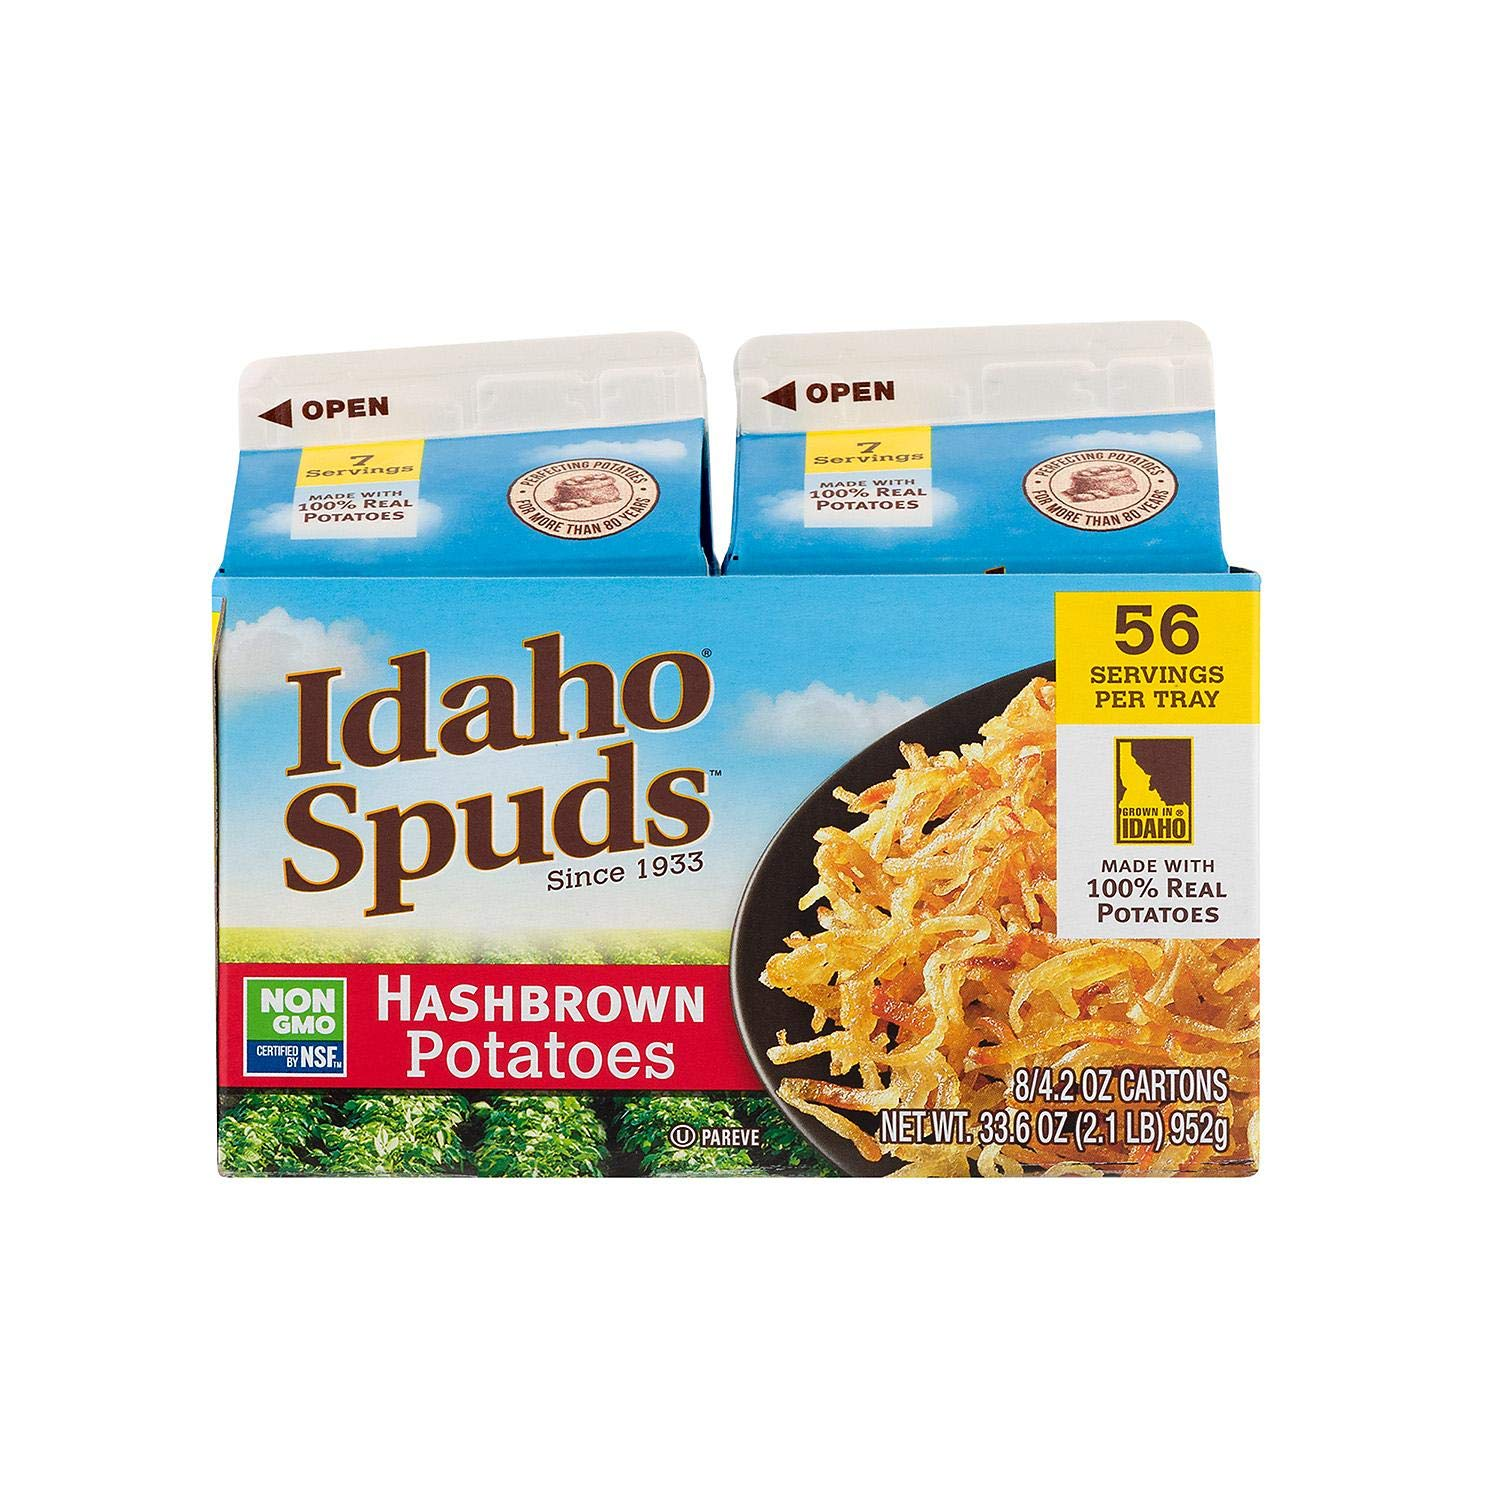 Idaho Spuds Real Potato, Gluten Free, Golden Grill Hashbrowns 4.2oz - PACK OF 16